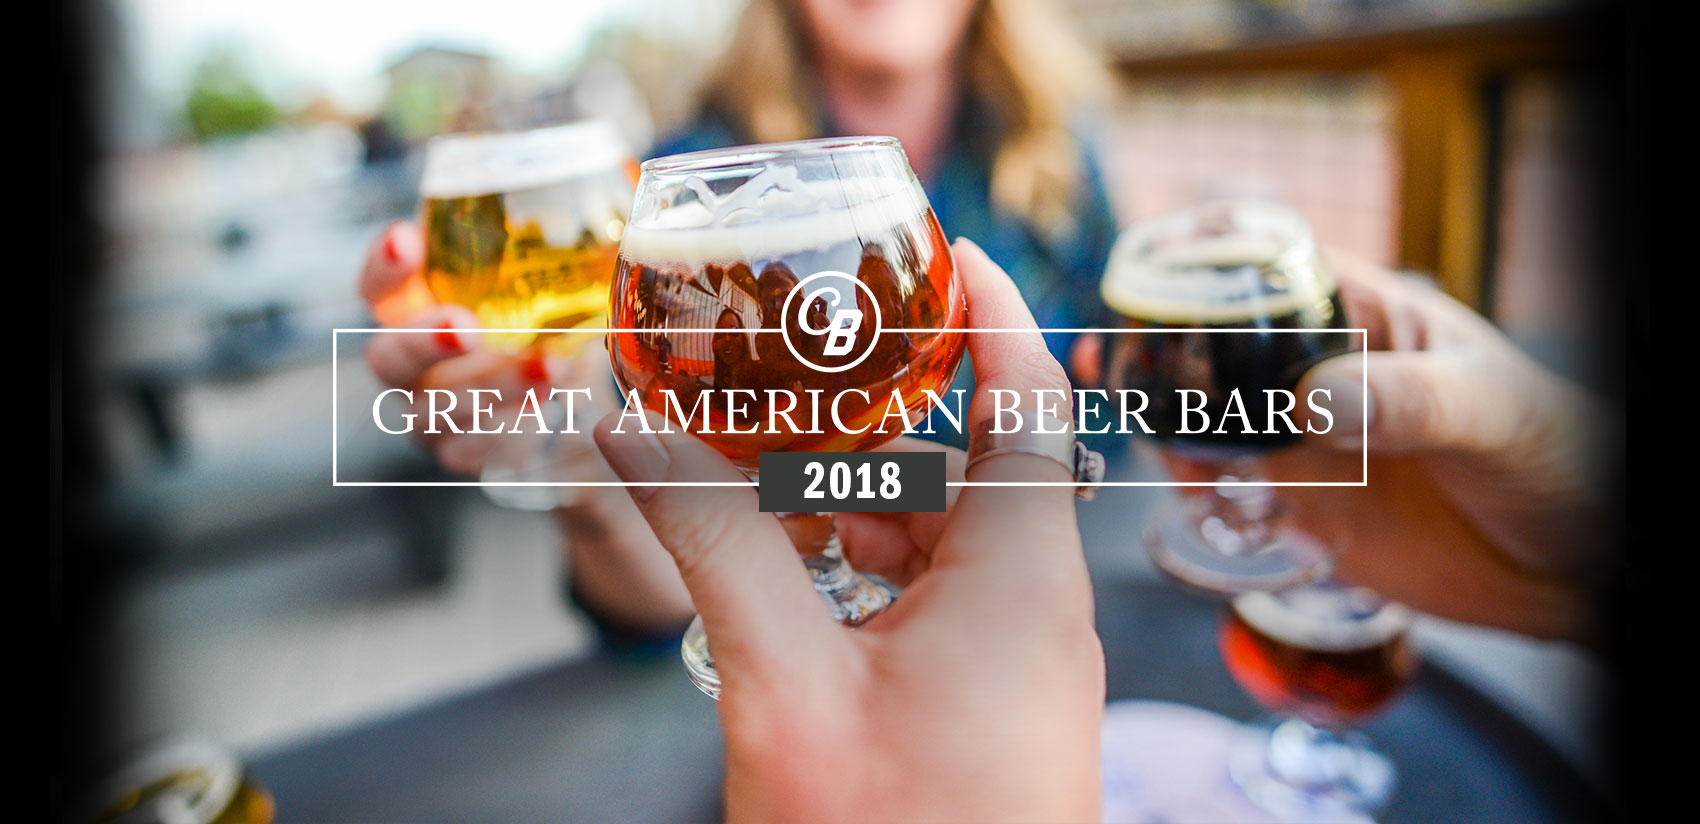 2018 Great American Beer Bars